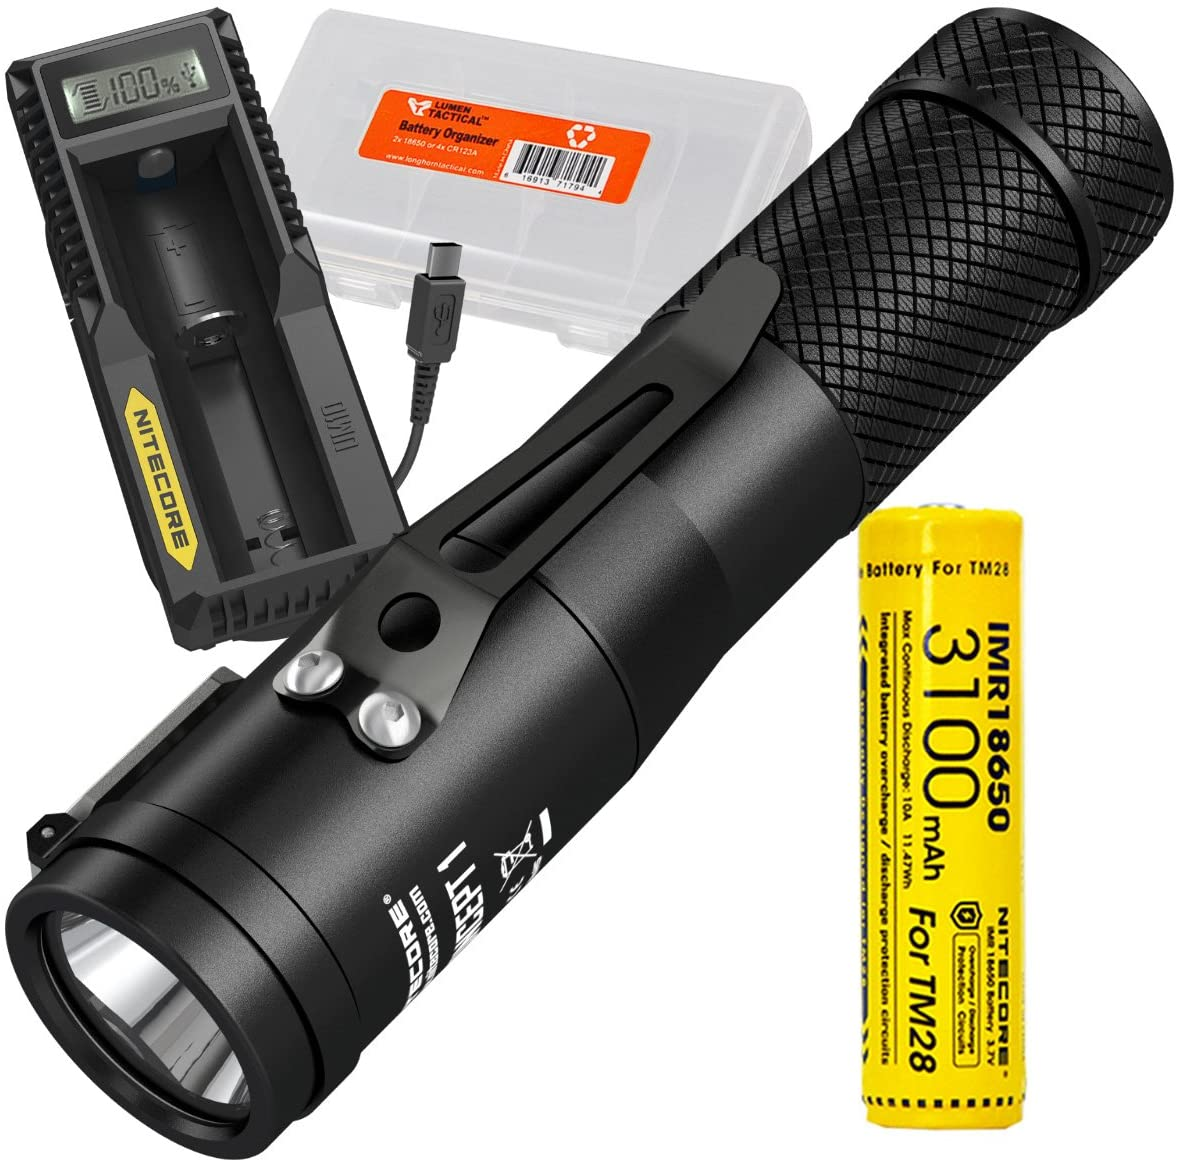 Nitecore Concept 1 1800 Lumen LED Compact Everyday Carry Flashlight PLUS Nitecore UM10 Single-Port USB Digi-Charger, 3100mAh IMR Rechargeable Battery, LumenTac Battery Organizer